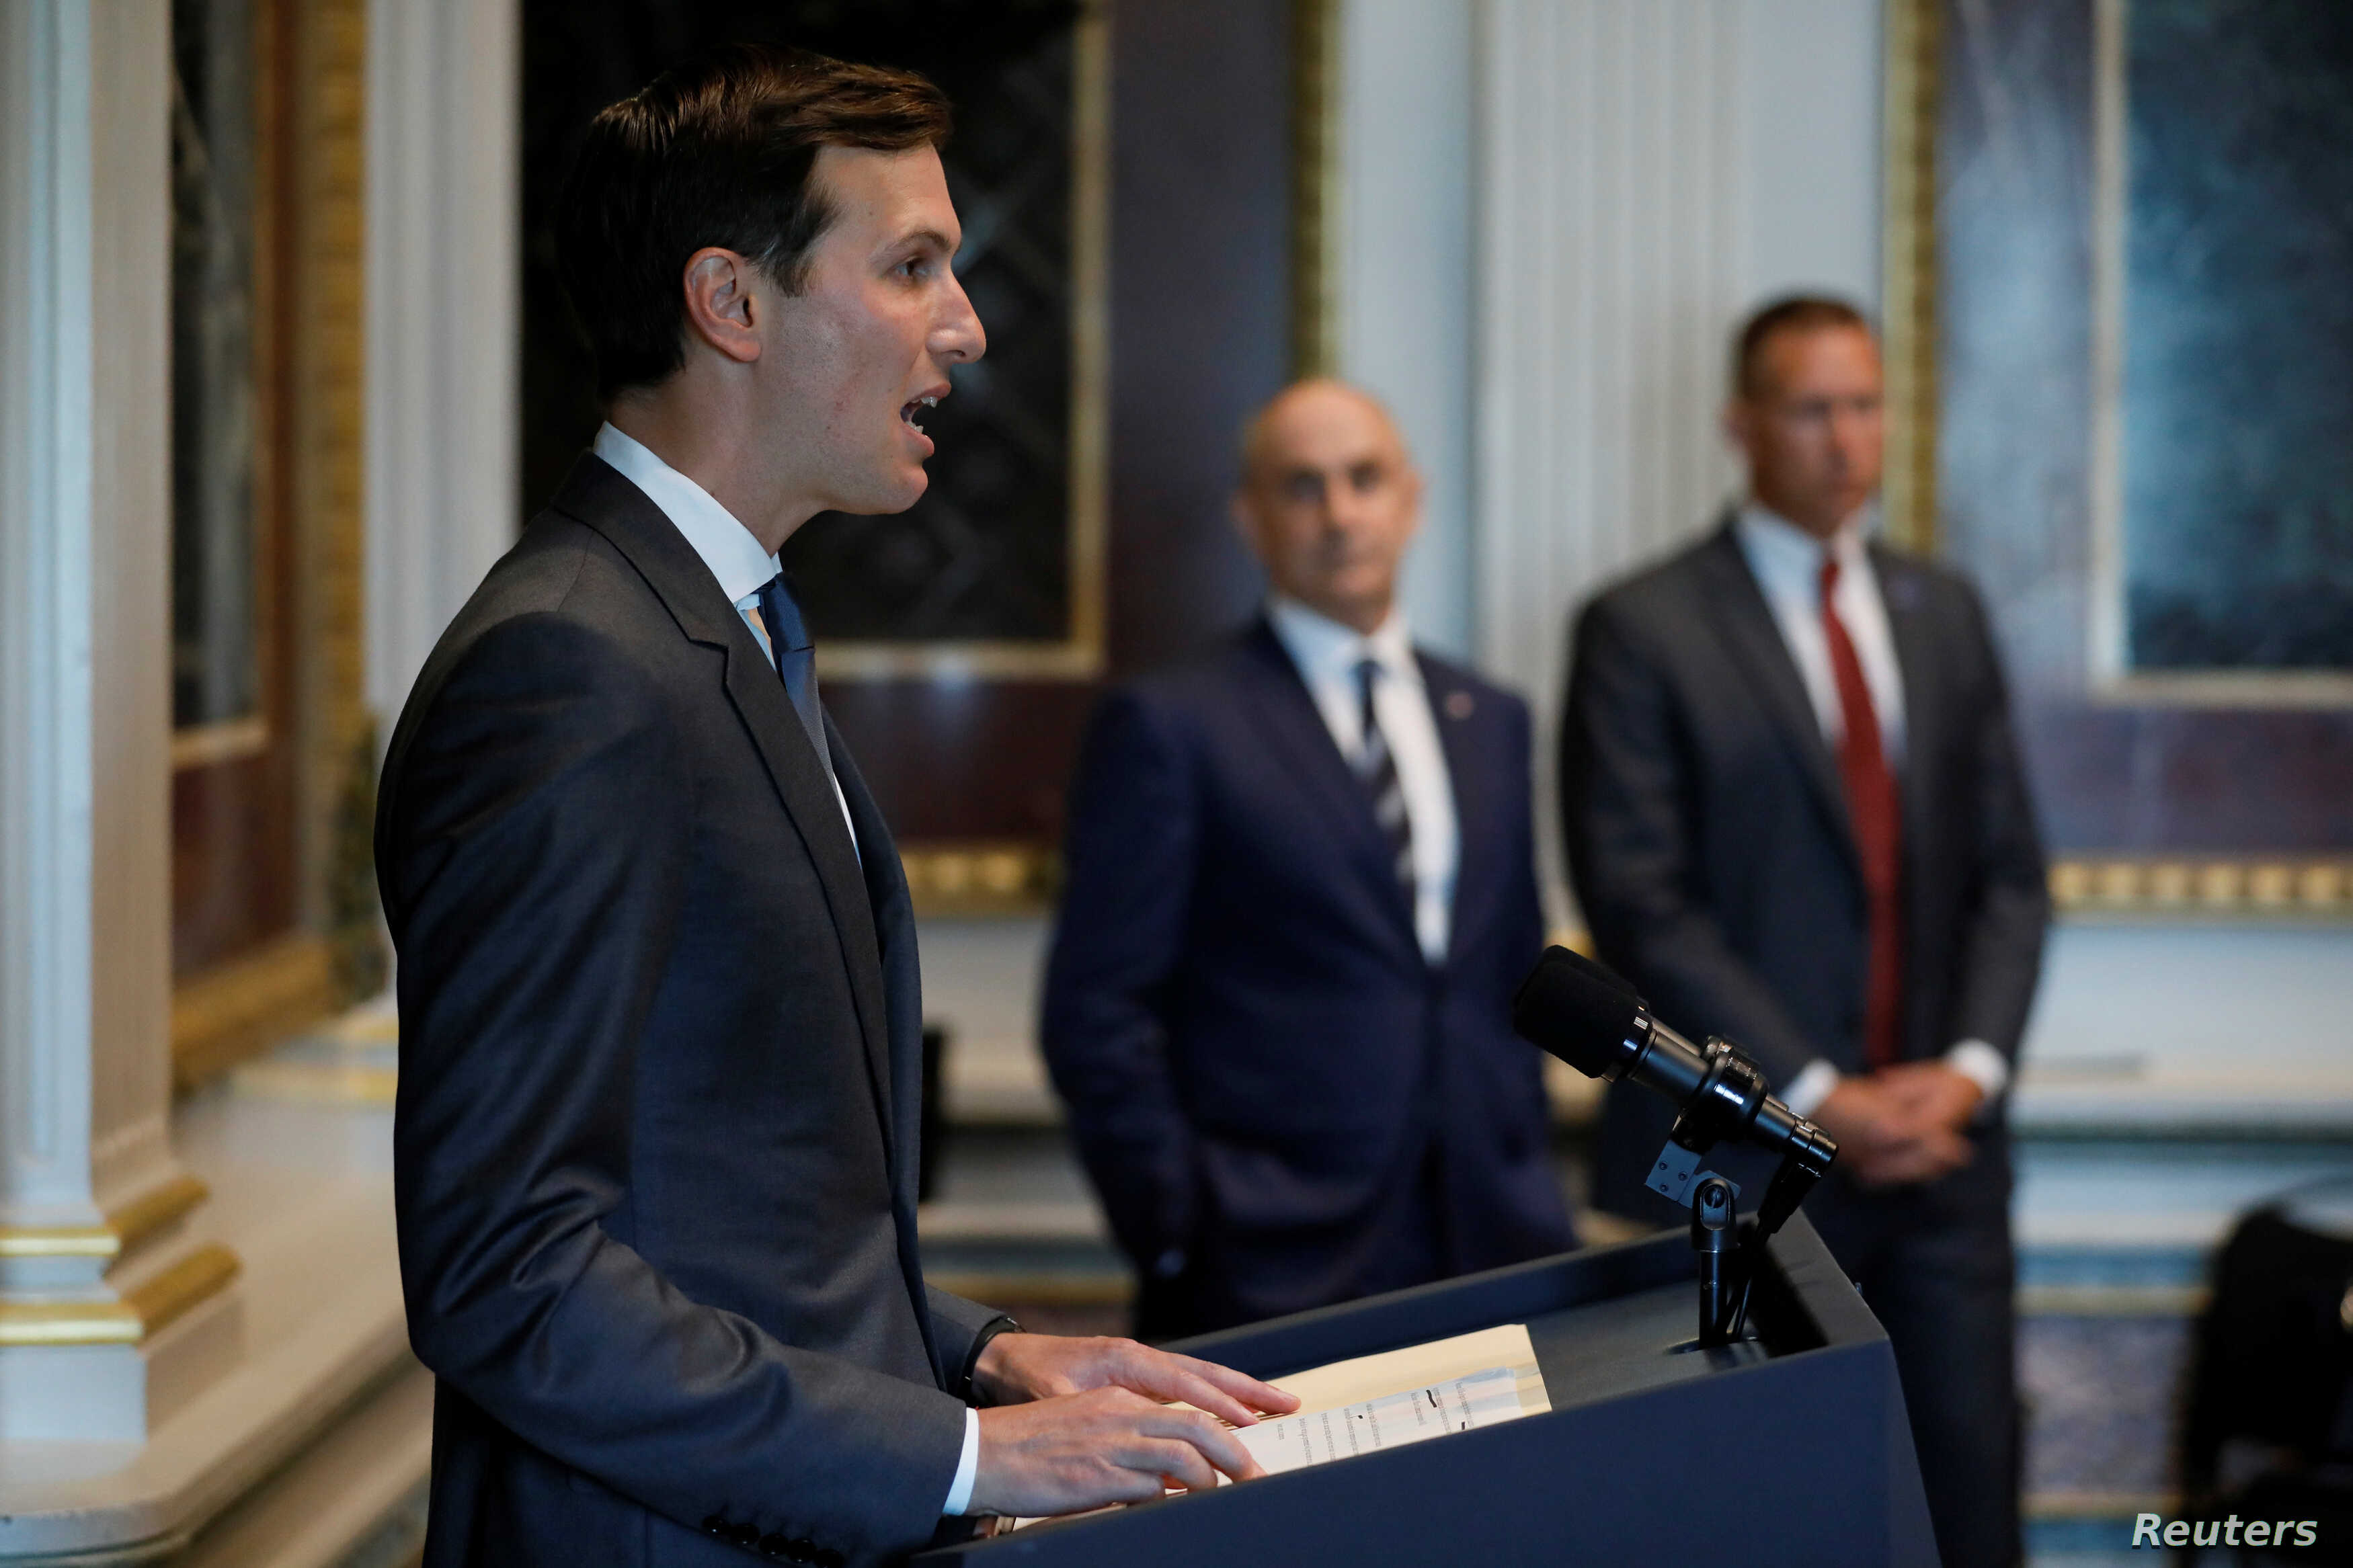 White House senior adviser Jared Kushner welcomes technology company leaders to a summit of the American Technology Council at the Eisenhower Executive Office Building in Washington, U.S. June 19, 2017.